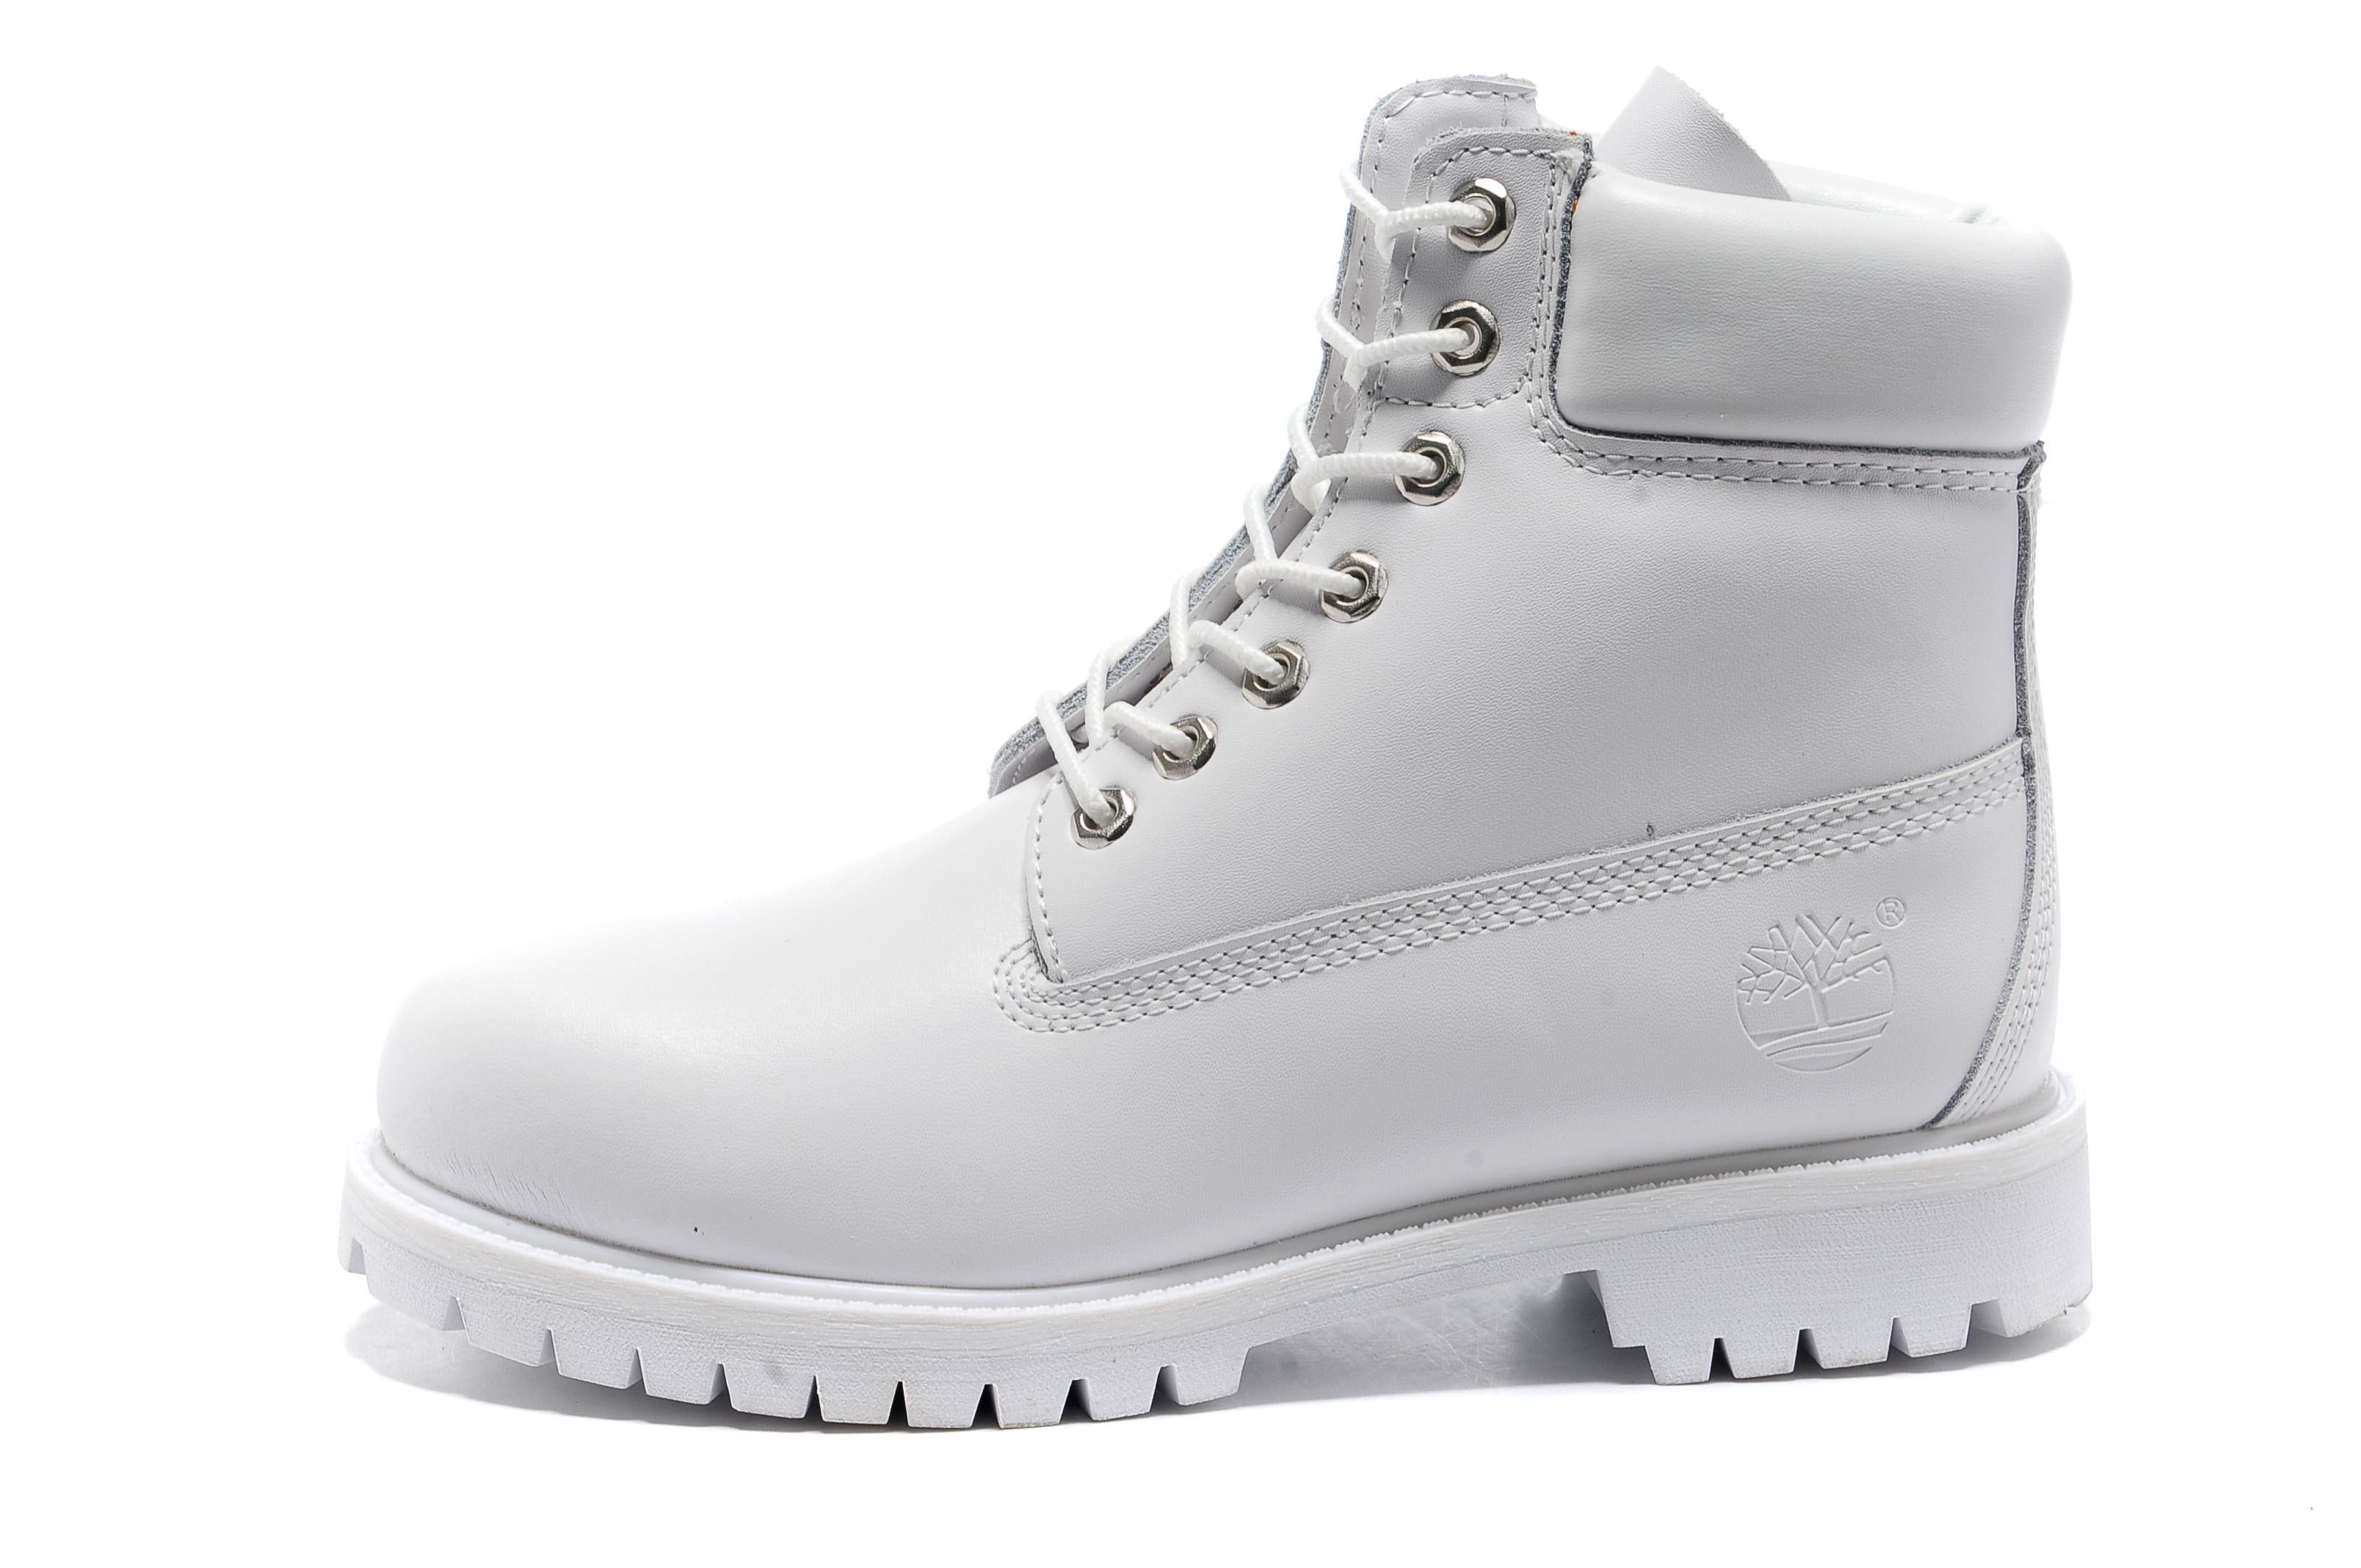 White Boots For Men F6wPlzJP